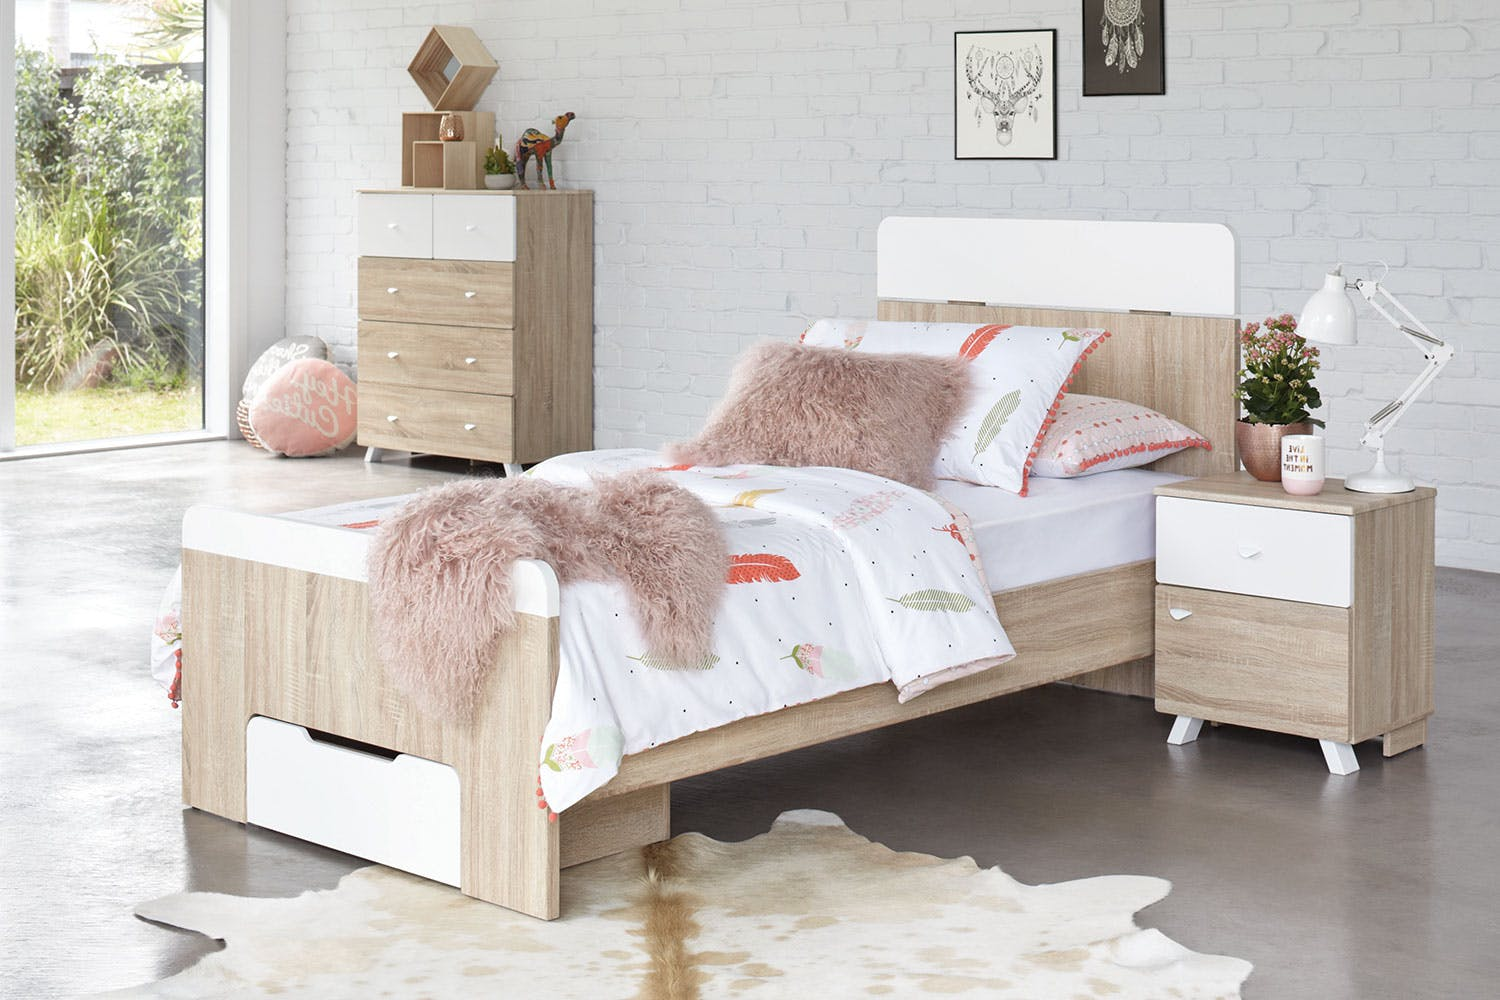 Kids Bedroom Furniture Nz Kids Bedroom Furniture Bed Frames Drawers Harvey Norman New